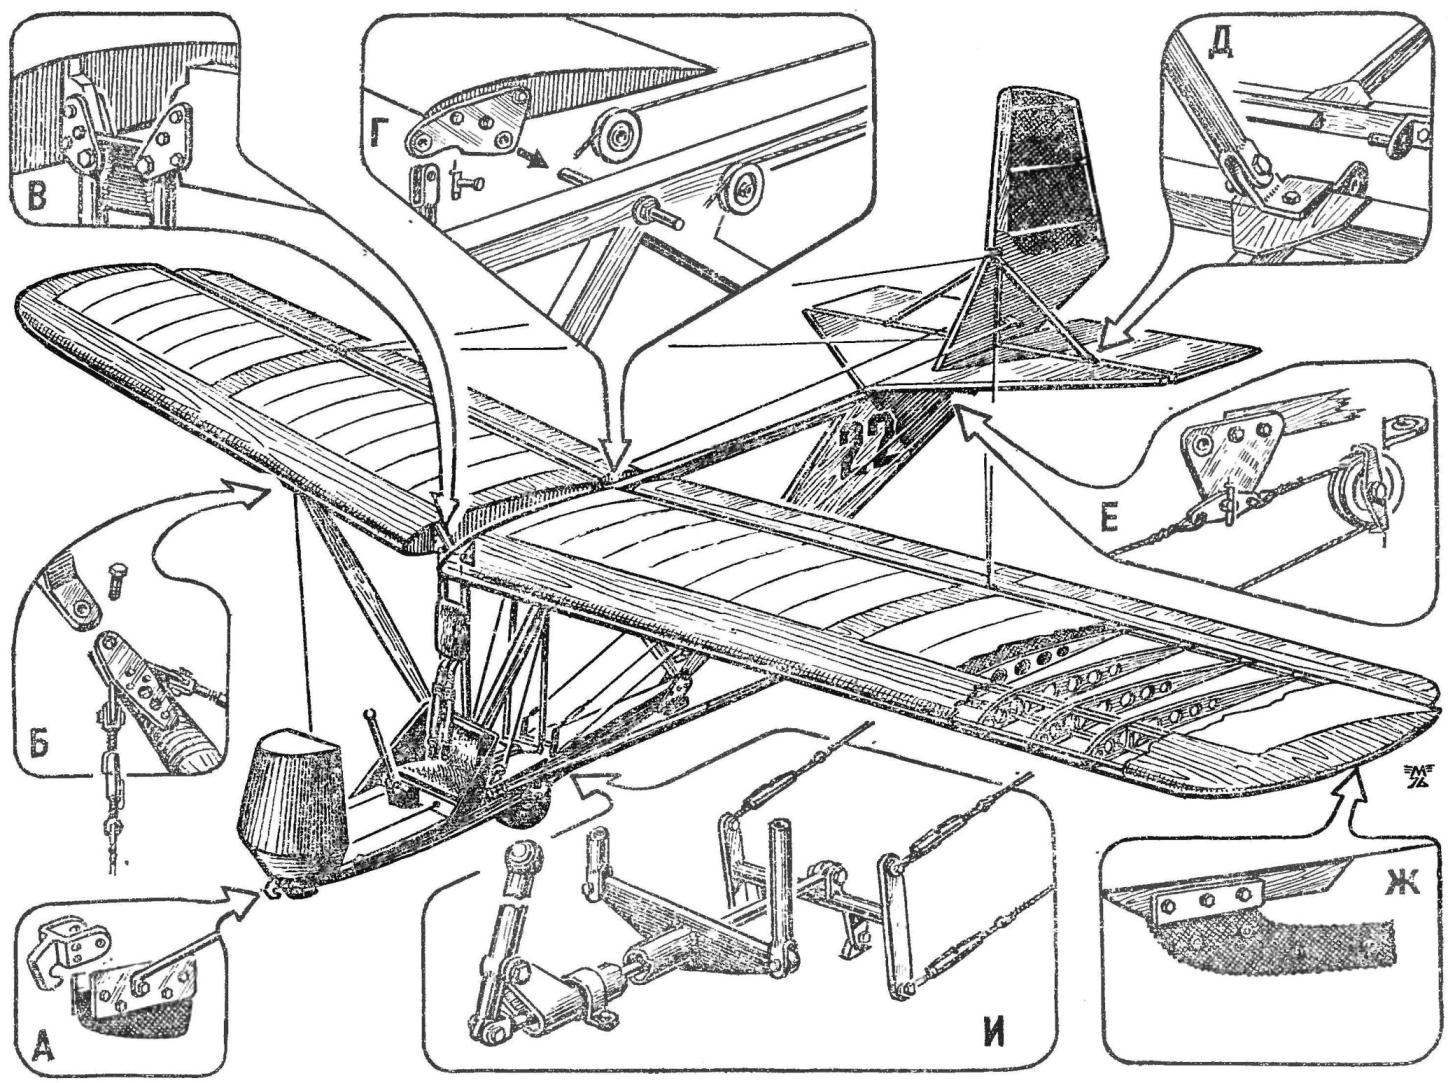 Fig. 1. The overall design of glider Bro-11-M